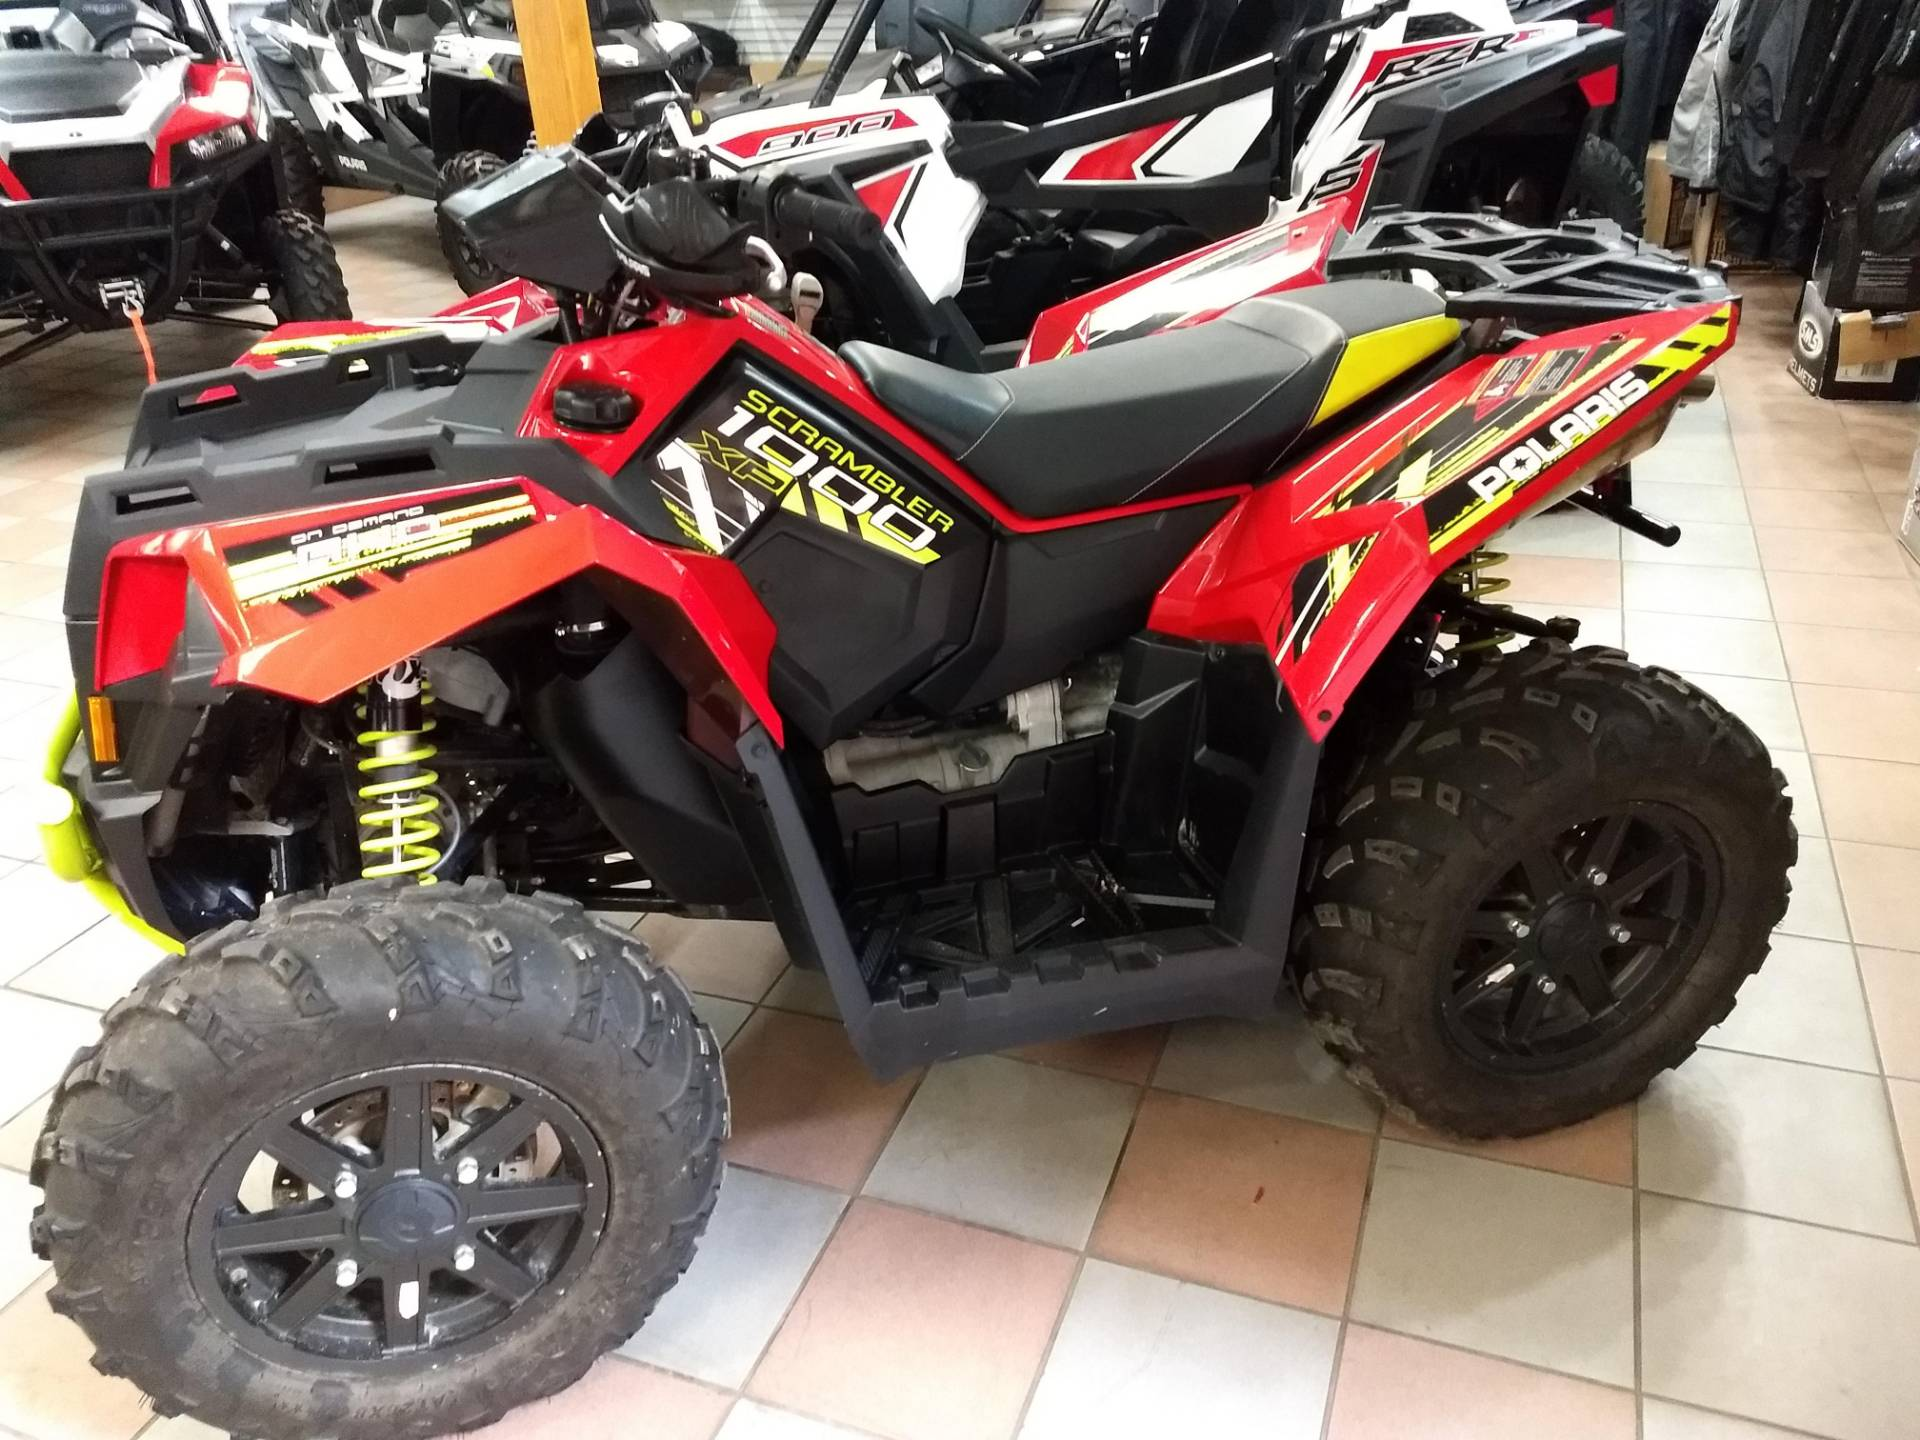 2018 Polaris Scrambler XP 1000 in Cleveland, Ohio - Photo 2